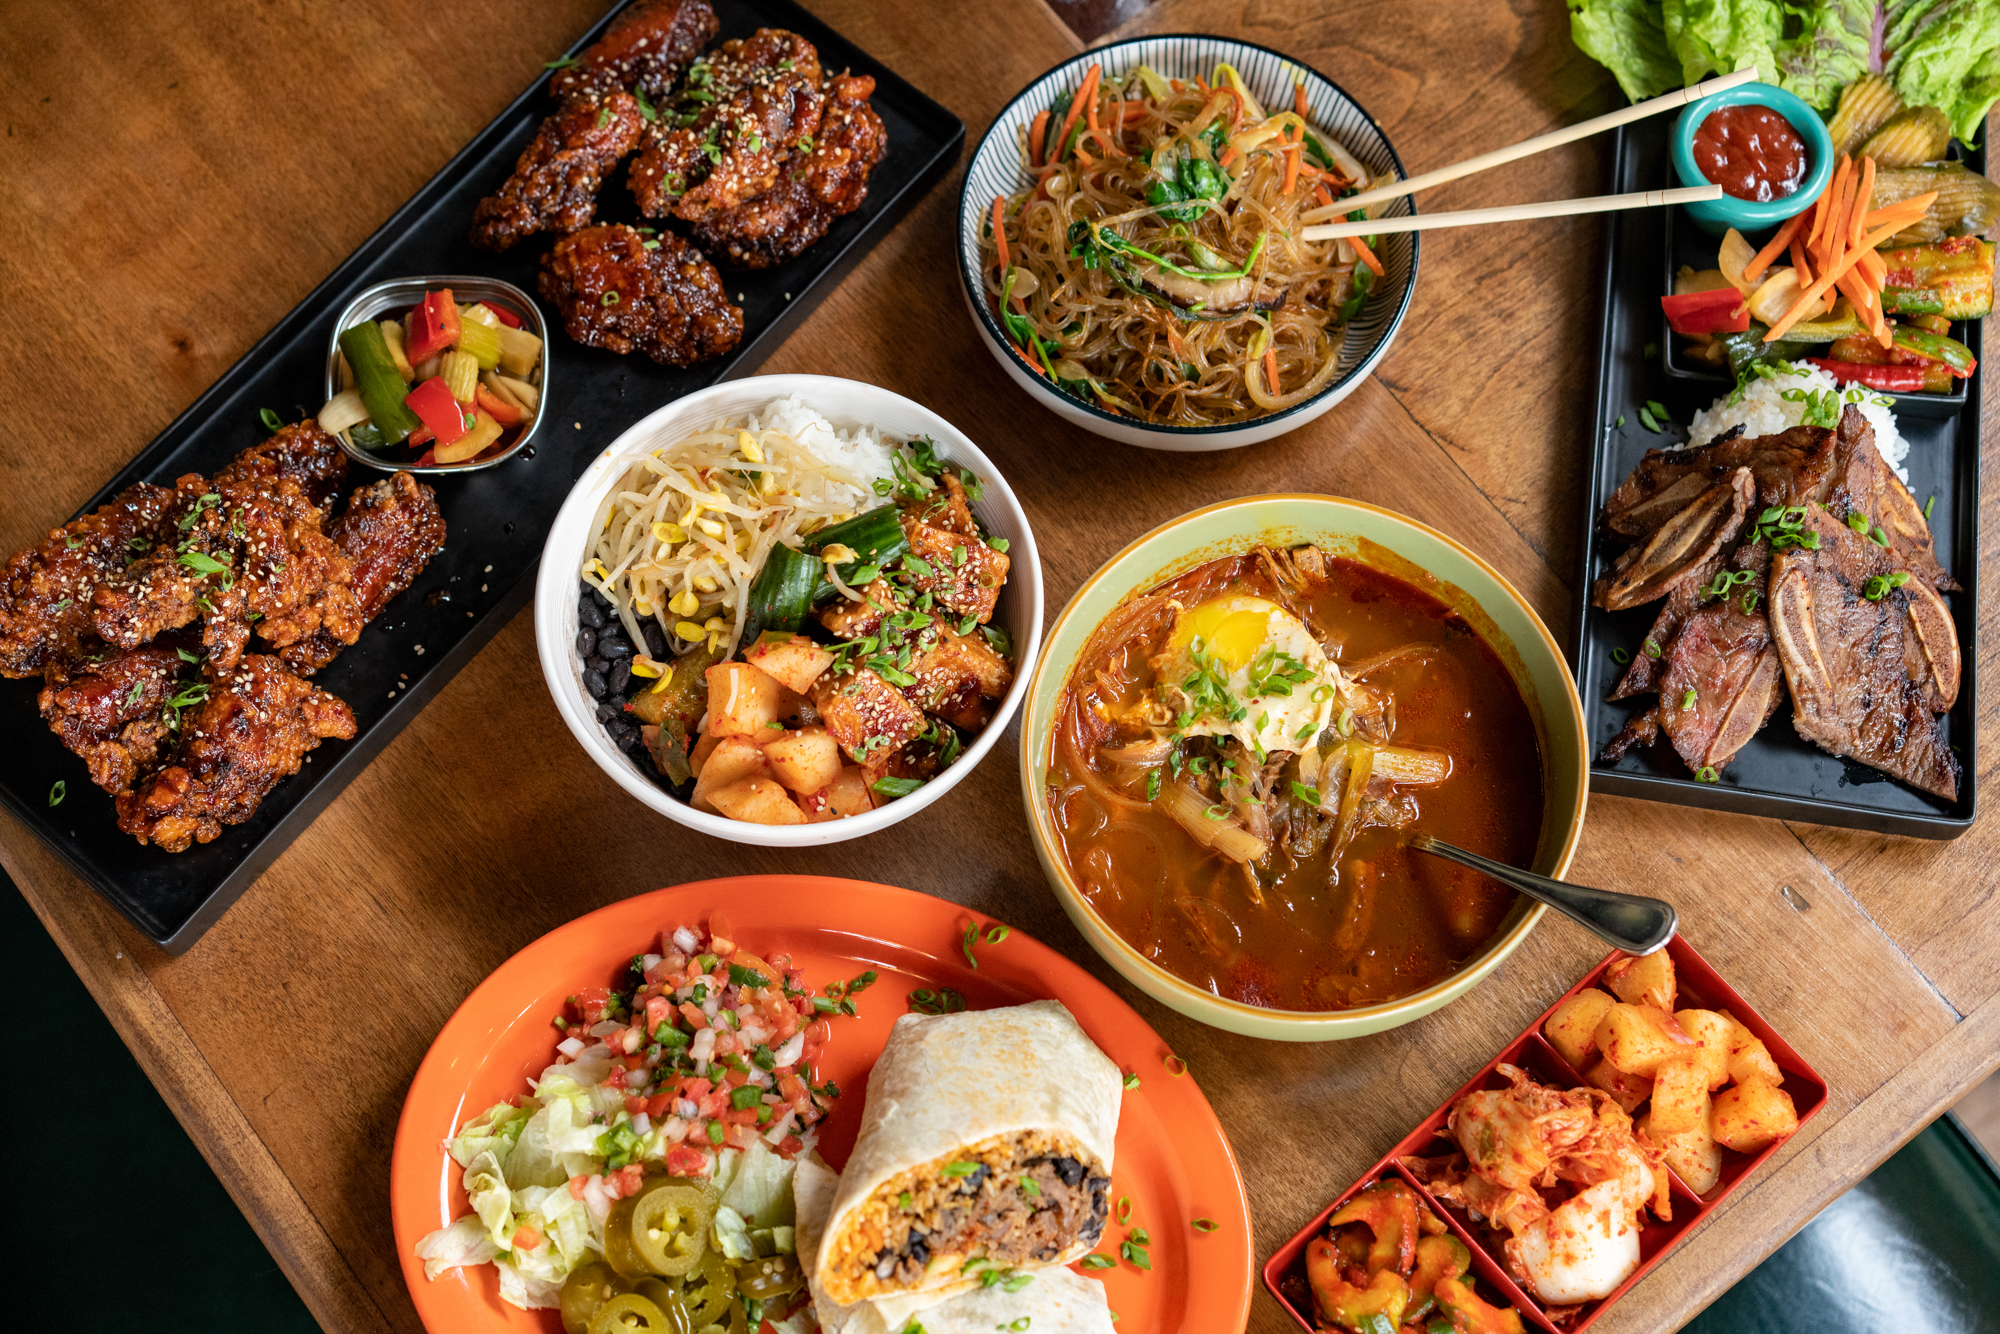 "New favorite restaurant alert!{&nbsp;}<a  href=""https://www.lazysusanseattle.com/"" target=""_blank"" title=""https://www.lazysusanseattle.com/"">Lazy Susan{&nbsp;}</a>just opened in Lower Queen Anne and is a fusion between Korean and Mexican cuisine. Located in the former Crow space, the founder and restaurateur, Suzana Olmos, has a compelling personal, family story which is the motivation behind her new venture. Suzana is also the brains behind the very popular{&nbsp;}<a  href=""http://www.citizencoffee.com/"" target=""_blank"" title=""http://www.citizencoffee.com/"">Citizen Café & Bar and Citizen Campfire</a>{&nbsp;}only a few blocks away. Lazy Susan is open for dinner and focuses on a crafty happy hour and cocktail service, with two boozy slushie machines up its sleeve. A weekend brunch service is coming soon. (Image courtesy of Lazy Susan)."